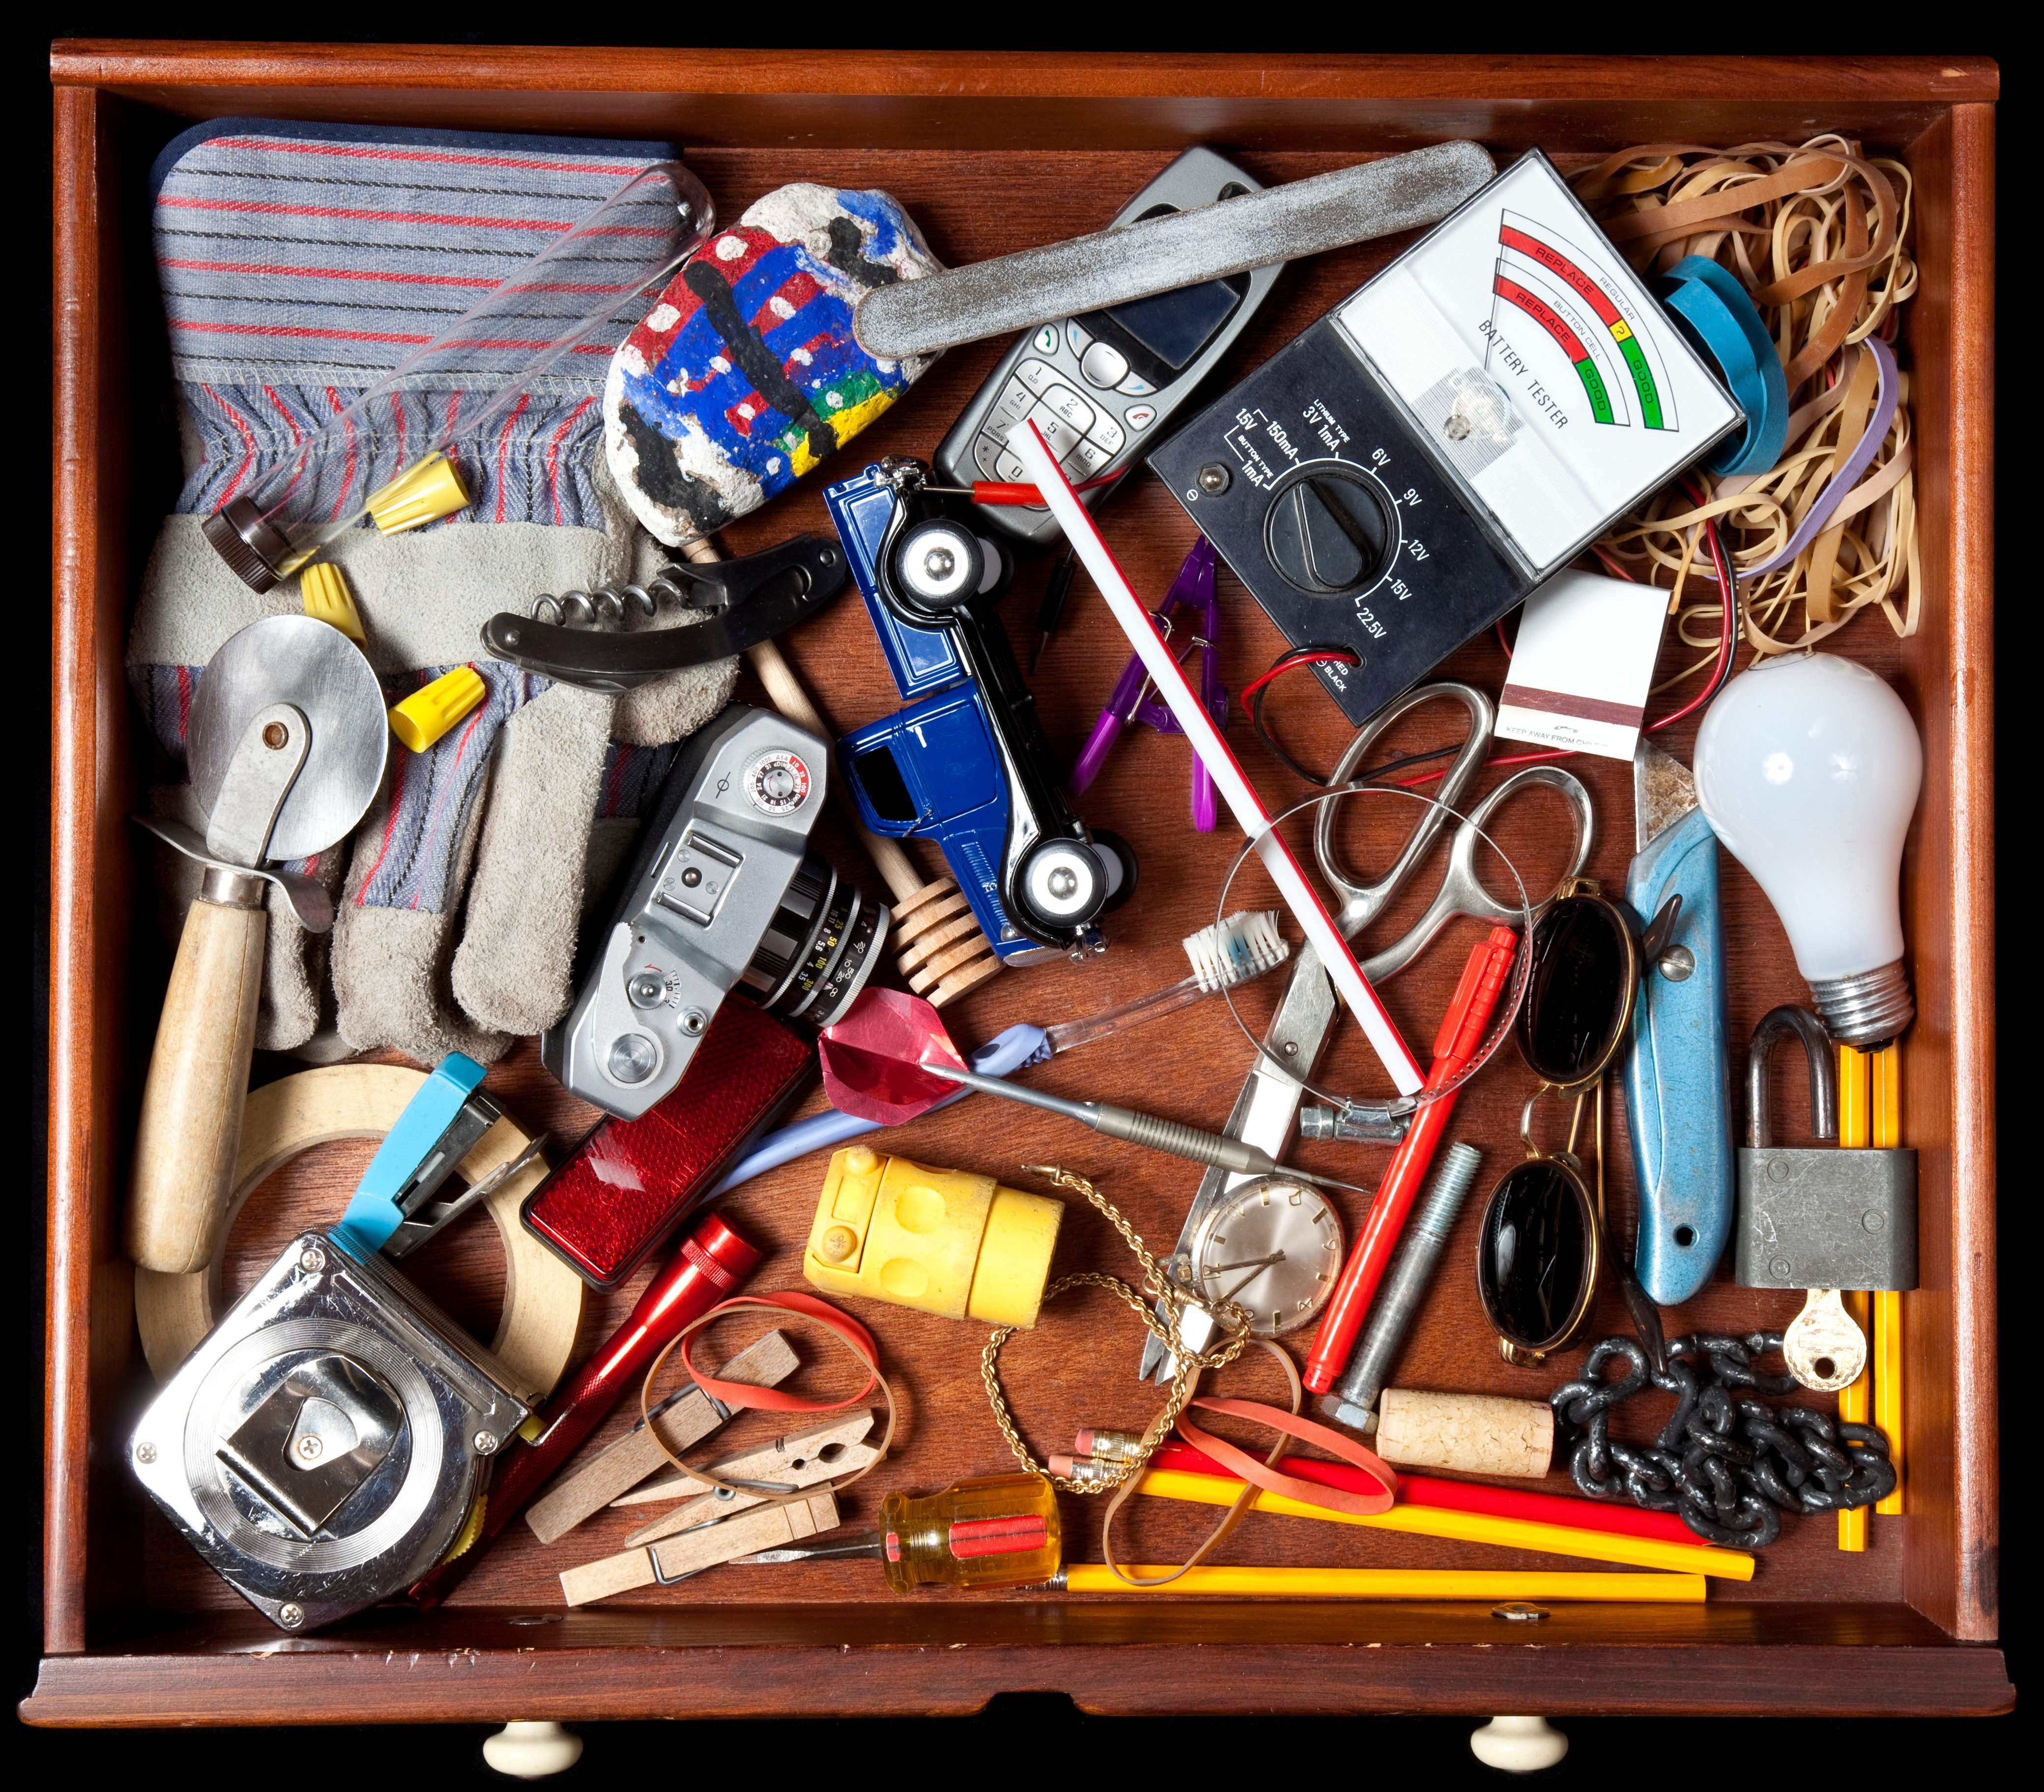 Why You Shouldn't Keep Batteries in the Junk Drawer